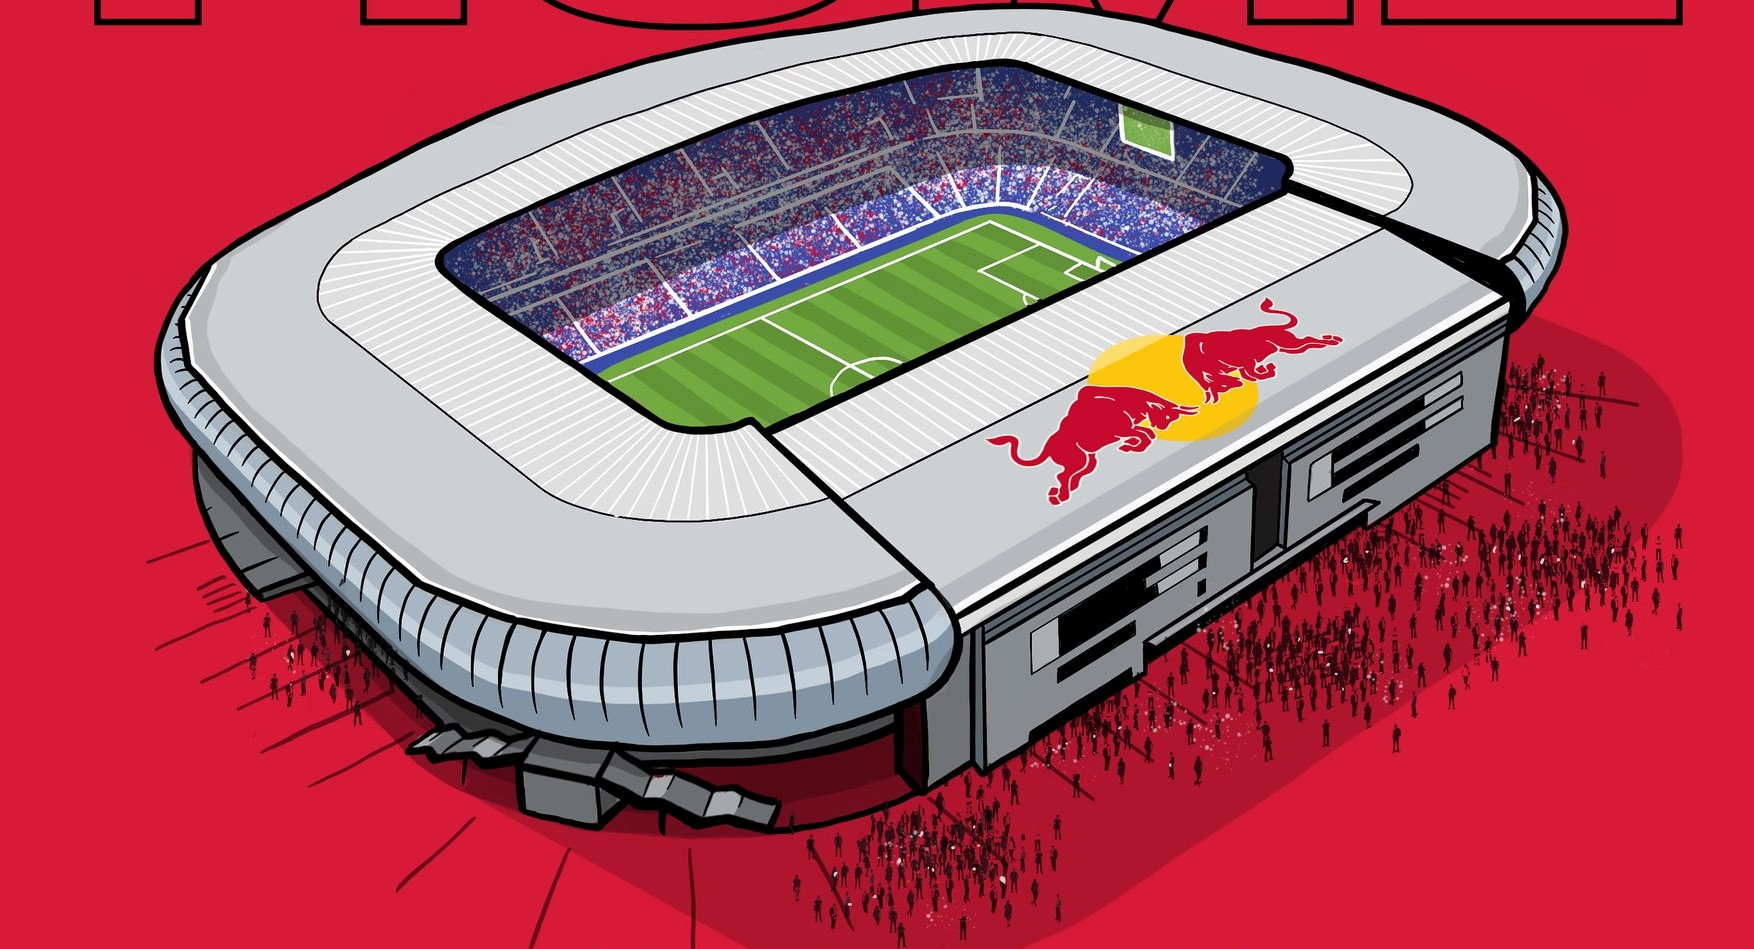 New York Red Bulls - all you need to know